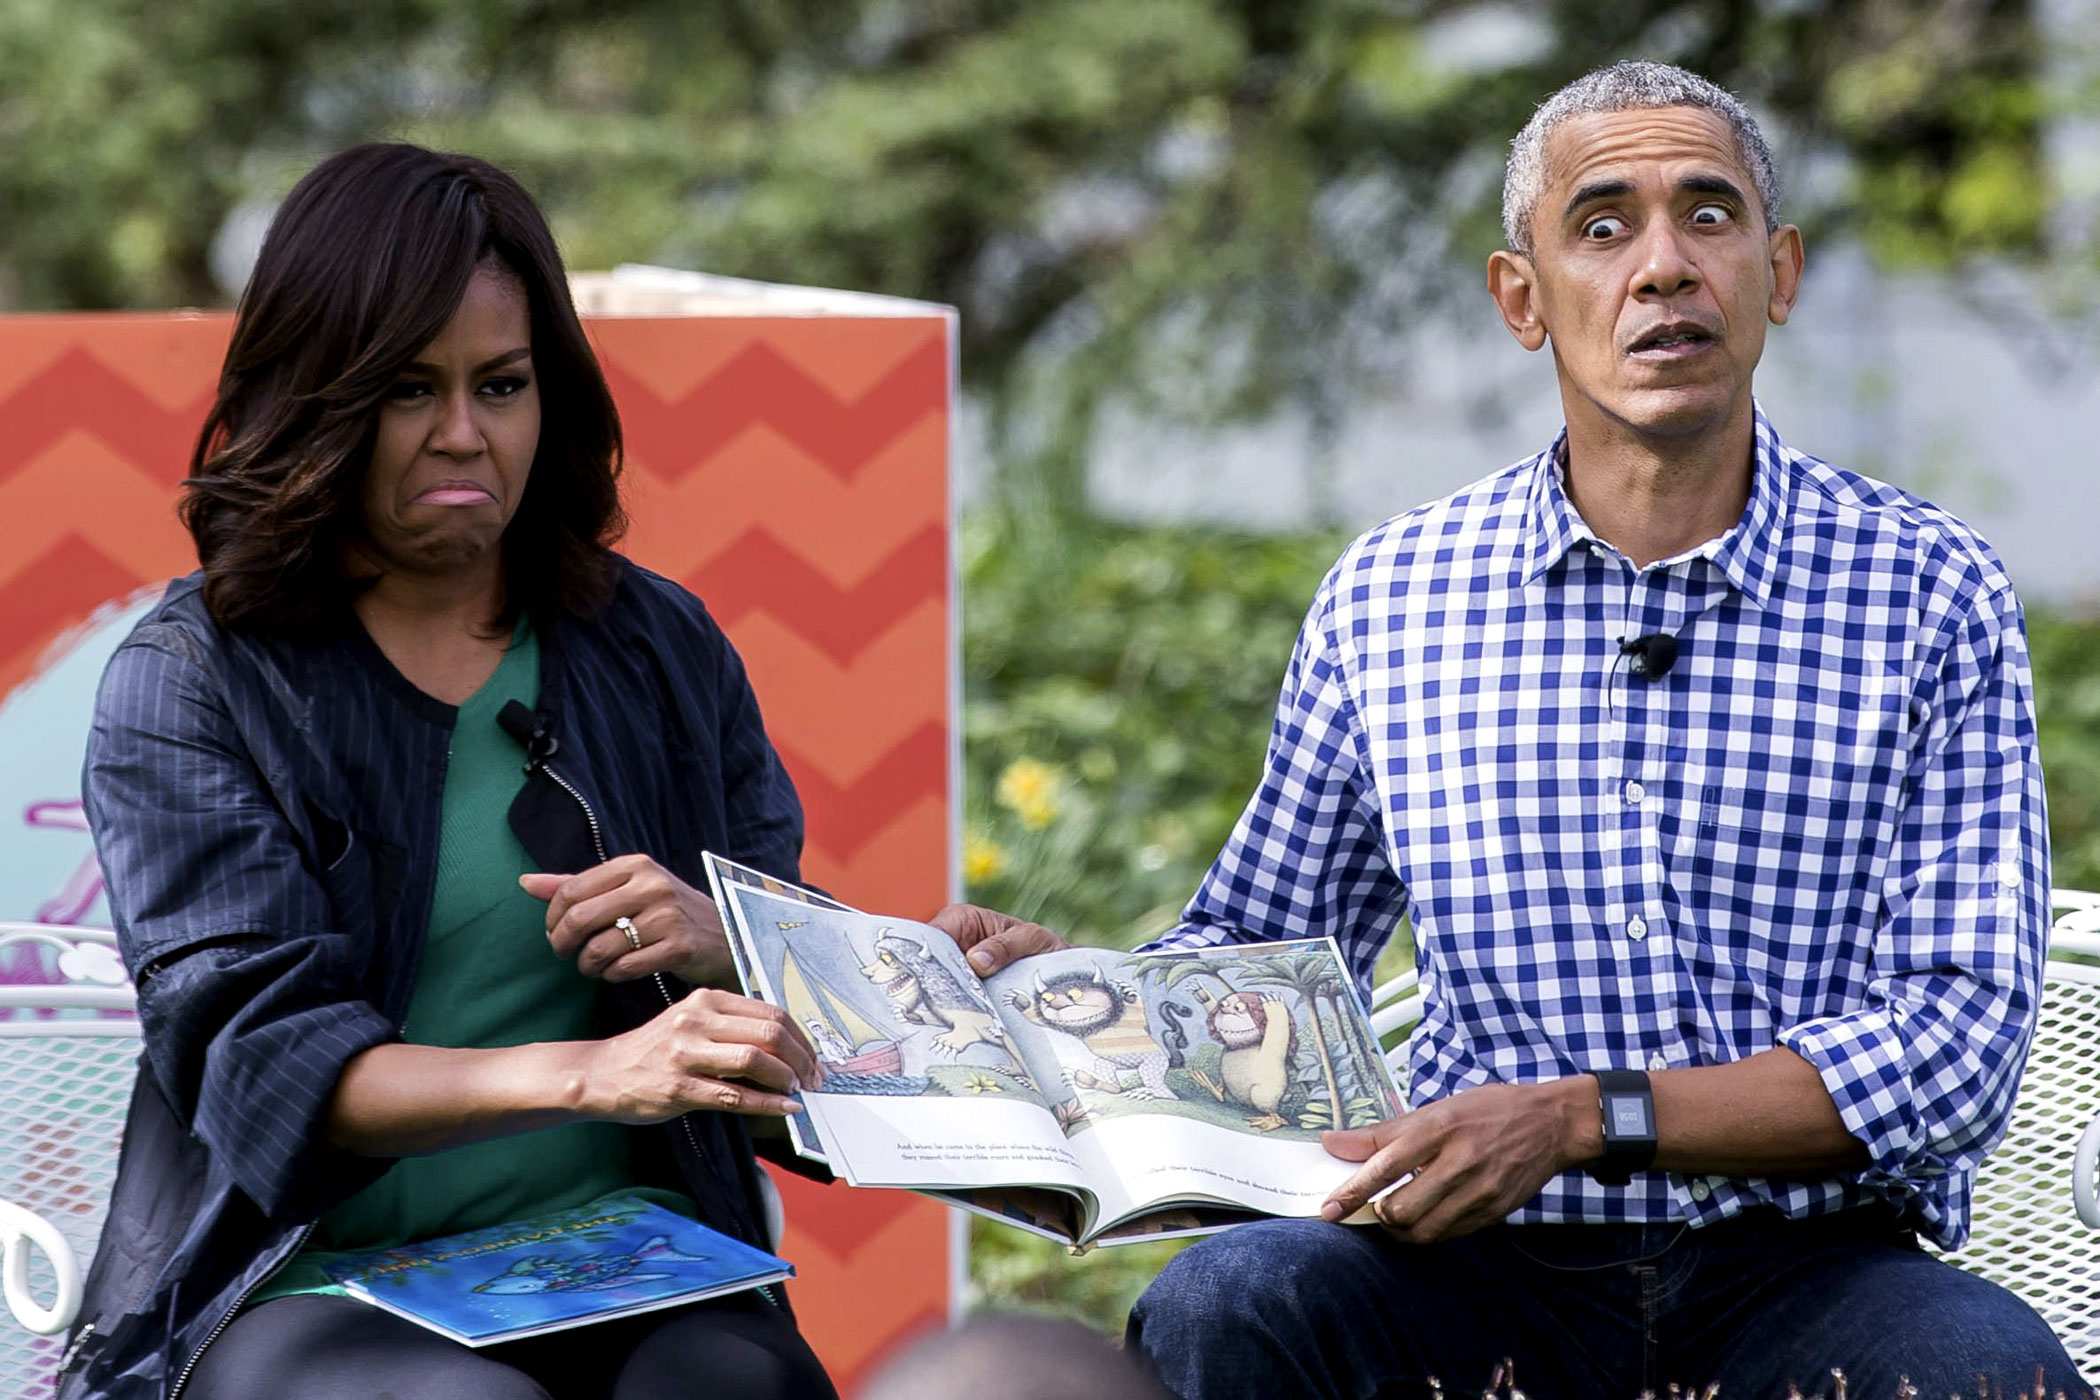 U.S. President Barack Obama and First Lady Michelle Obama read the book  Where the Wild Things Are  to a group of children during the 138th annual White House Easter Egg Roll in Washington on March 28, 2016.